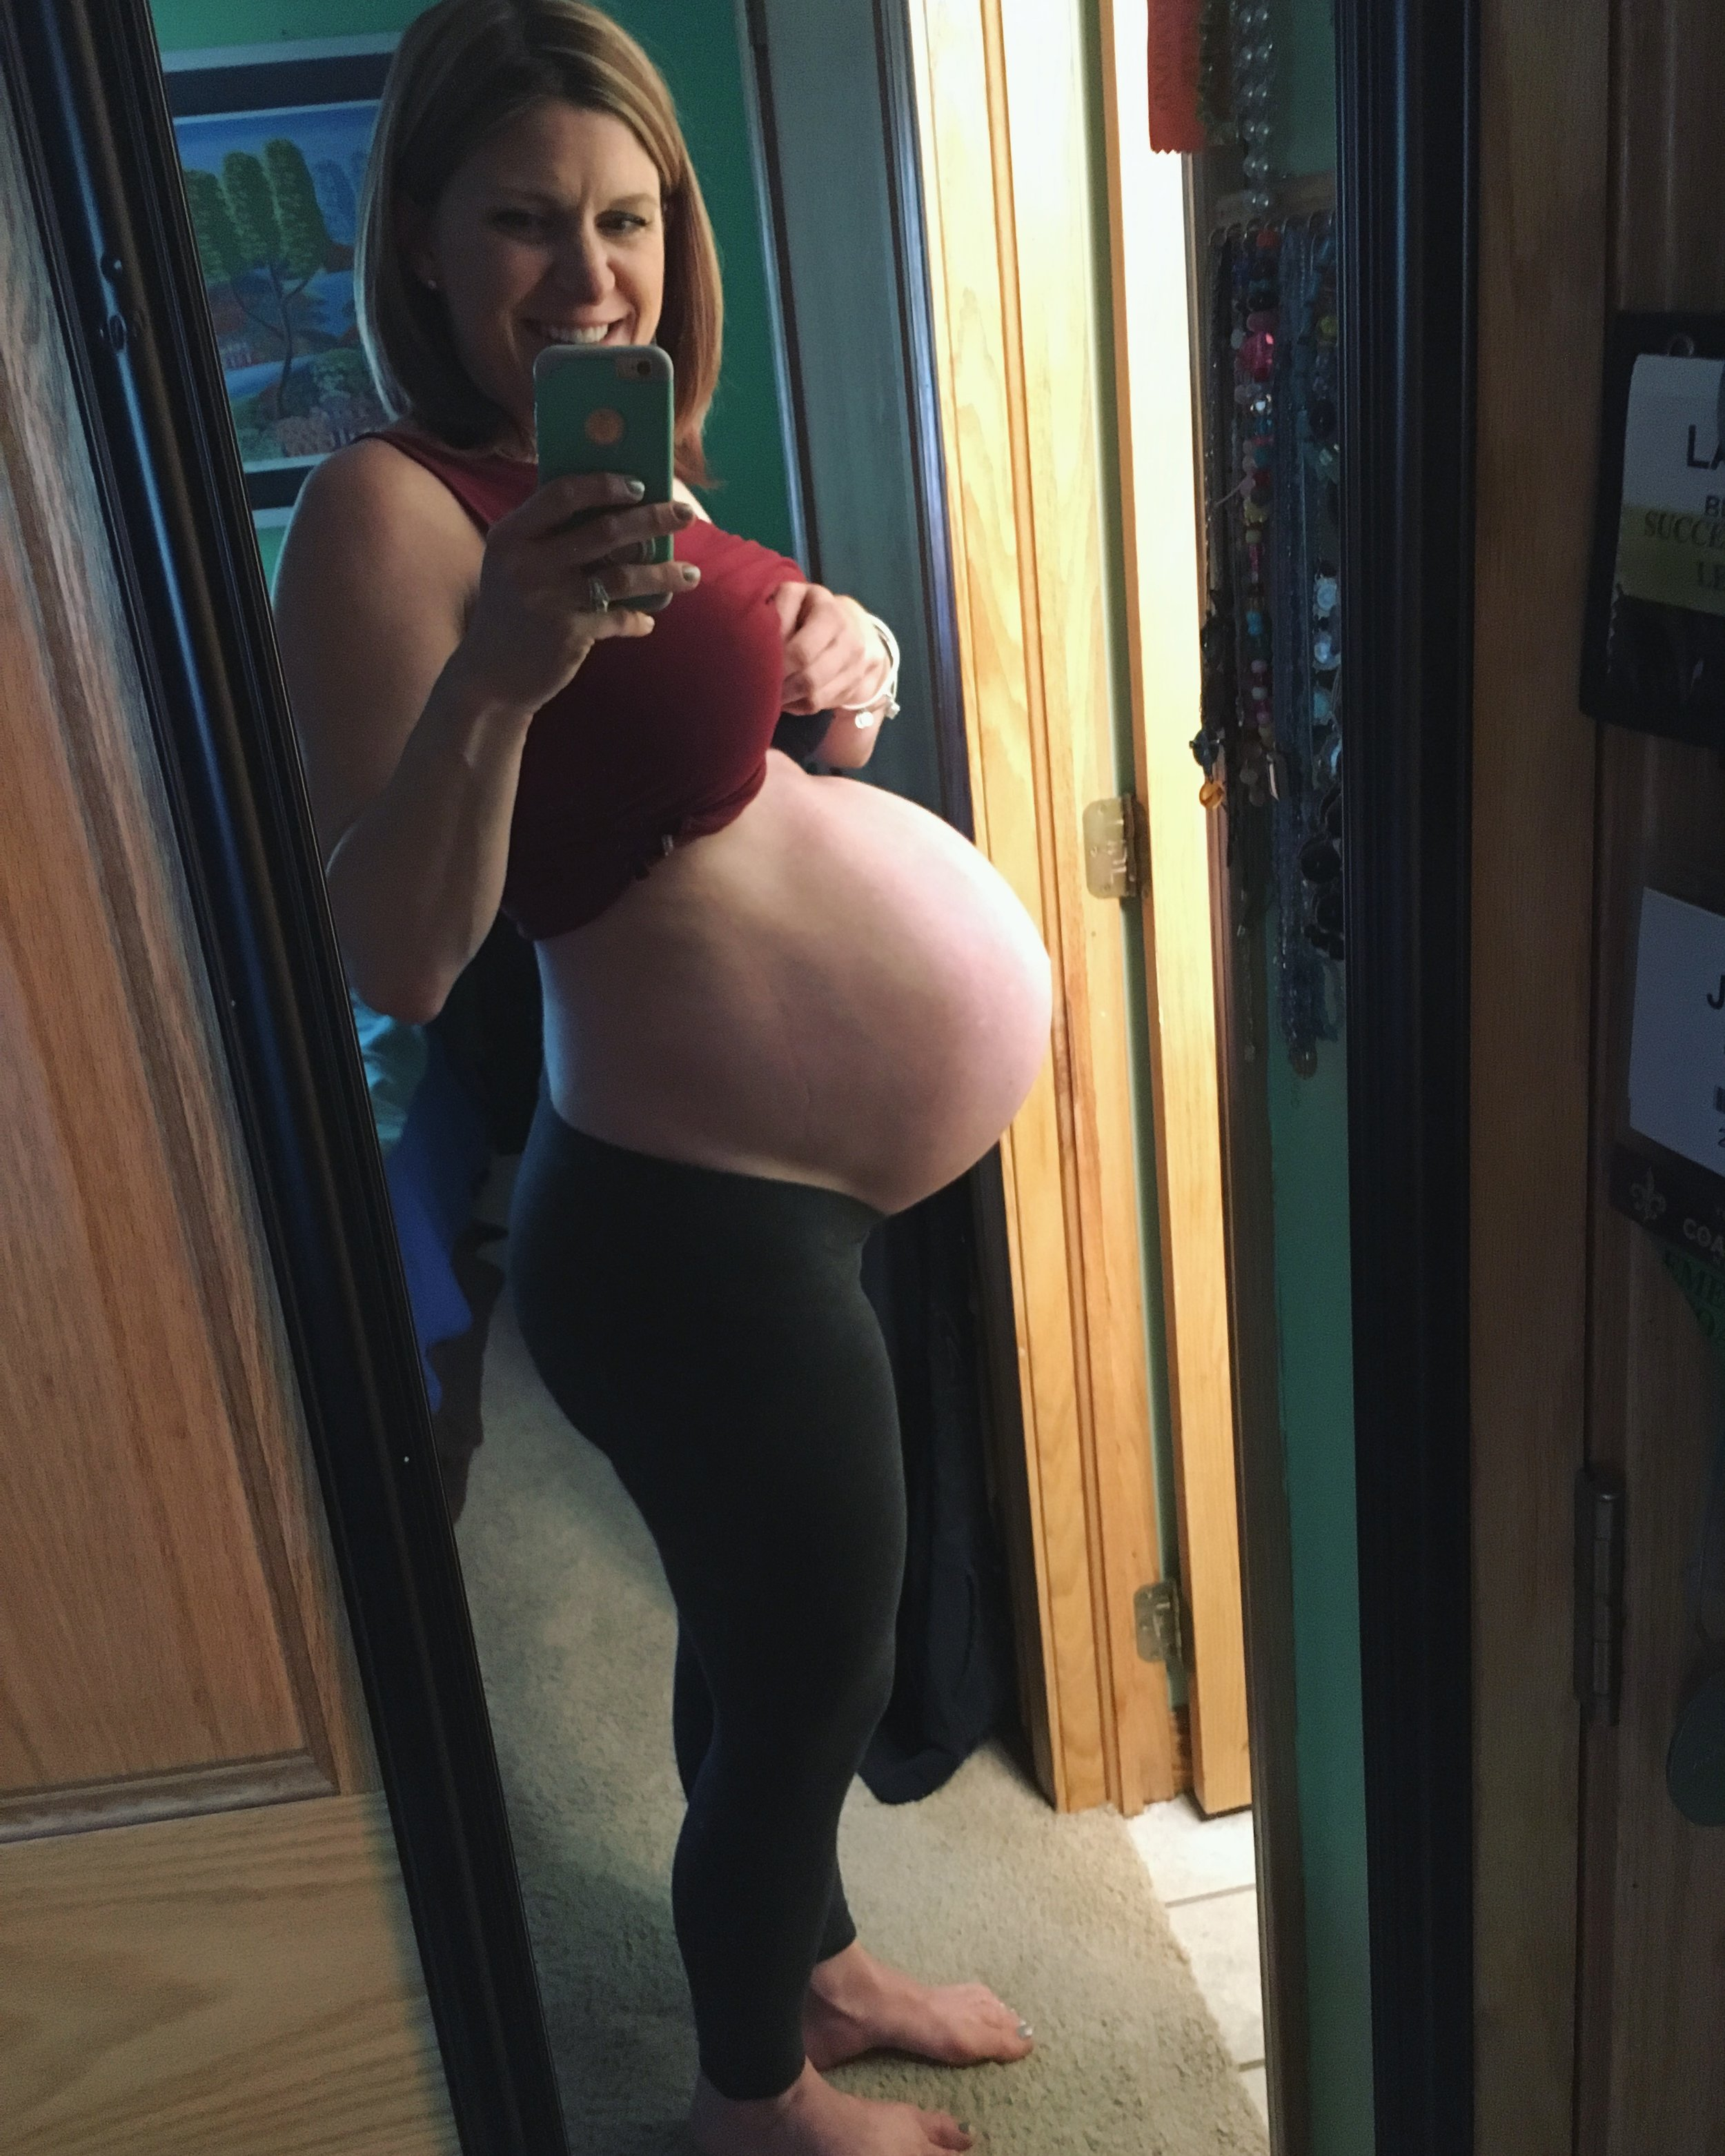 37 weeks pregnant- the night before going into labor